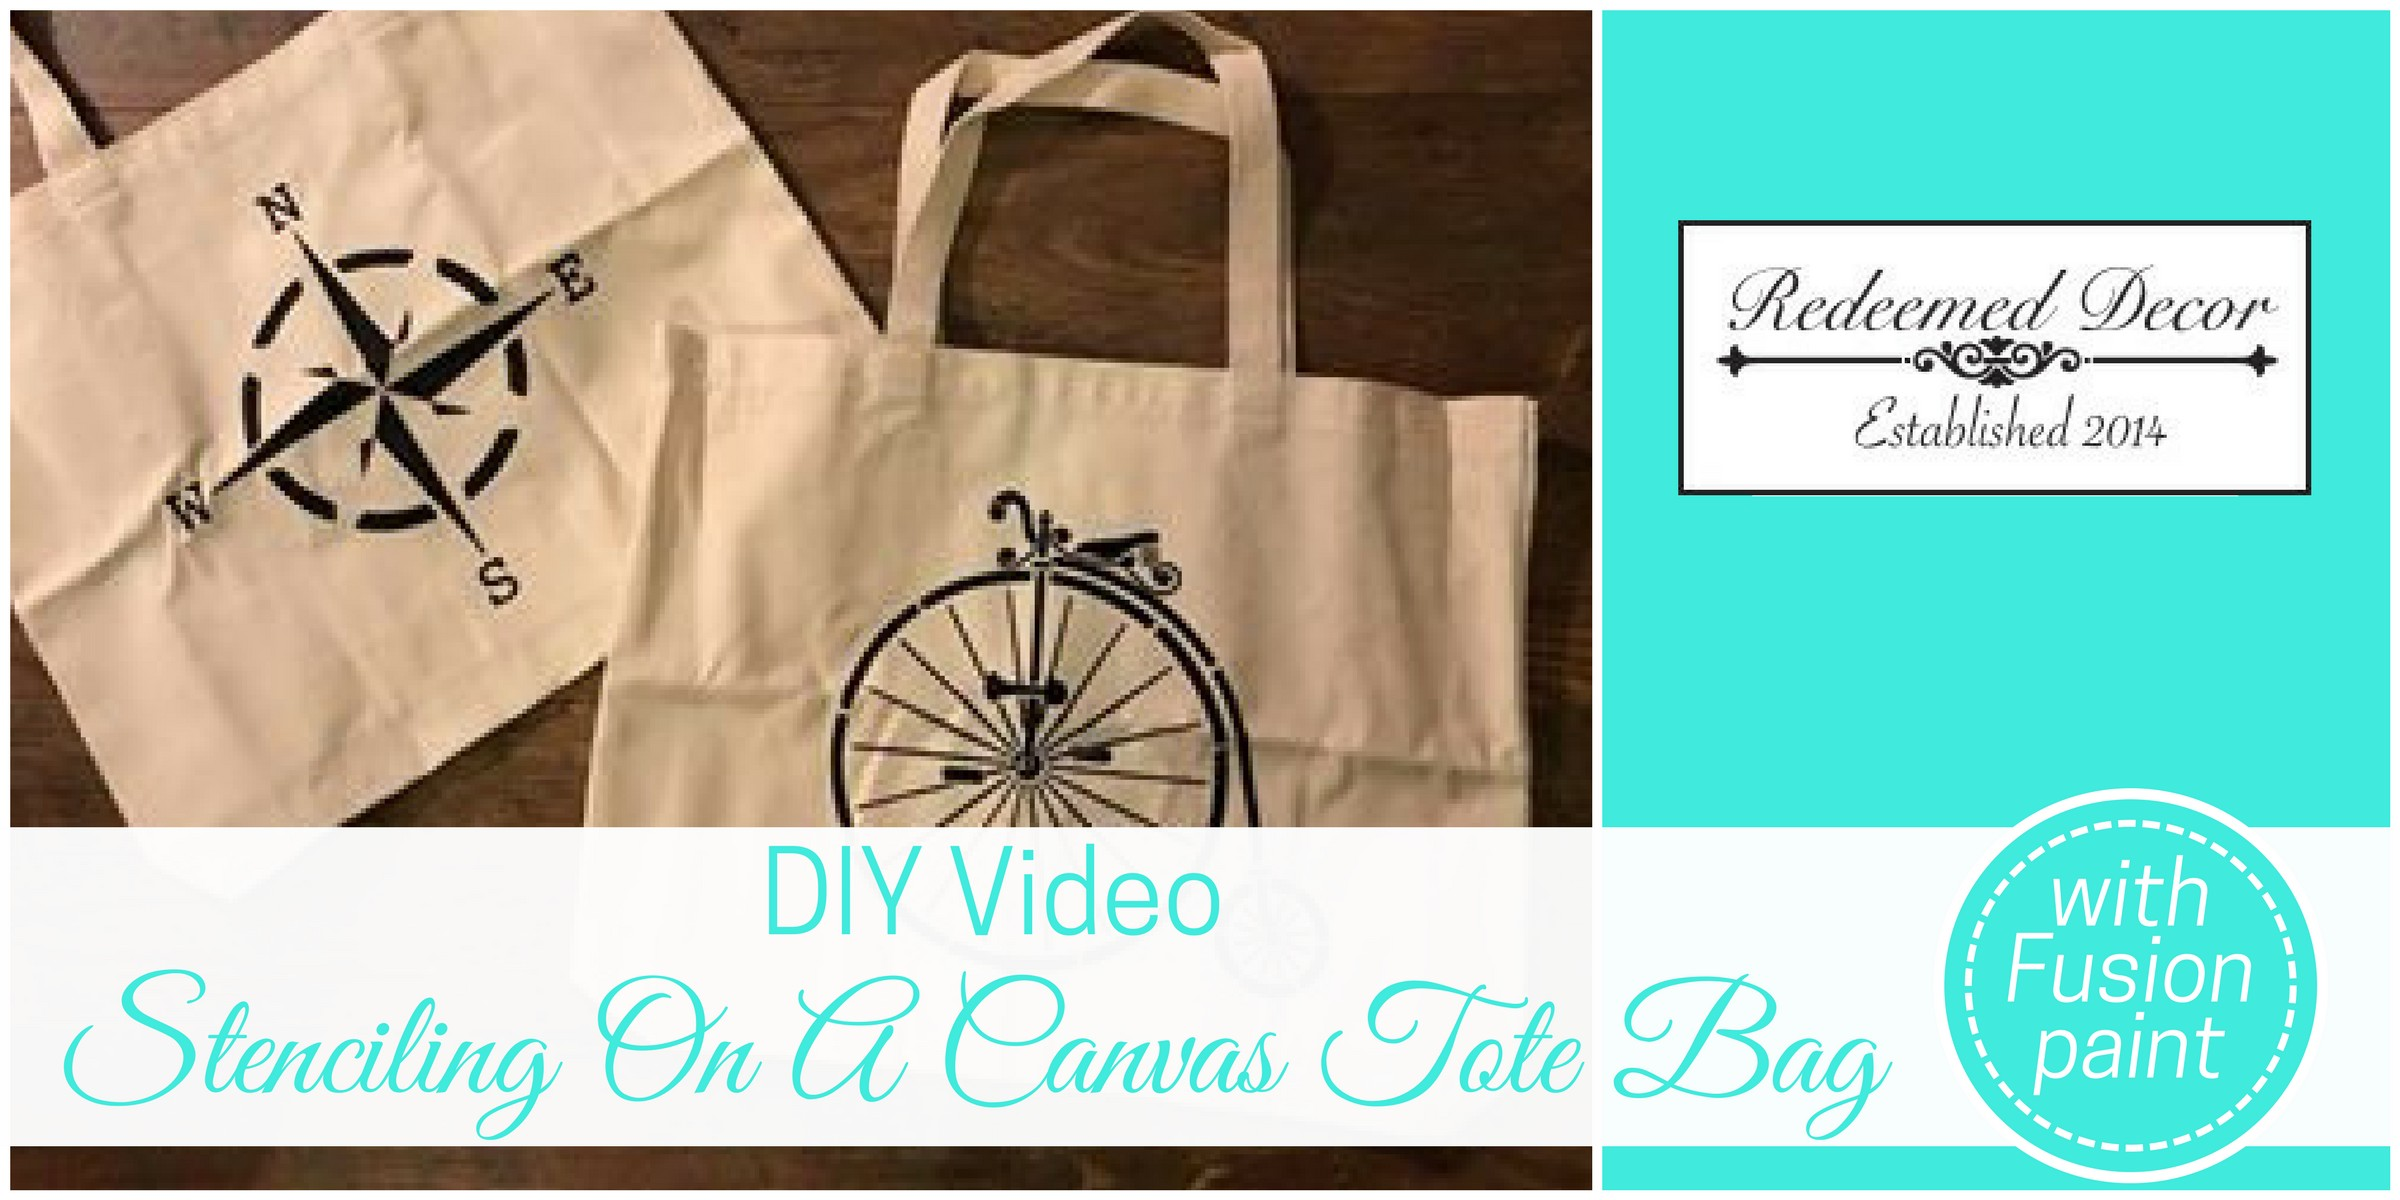 Canvas tote bags with stencils and title of blog